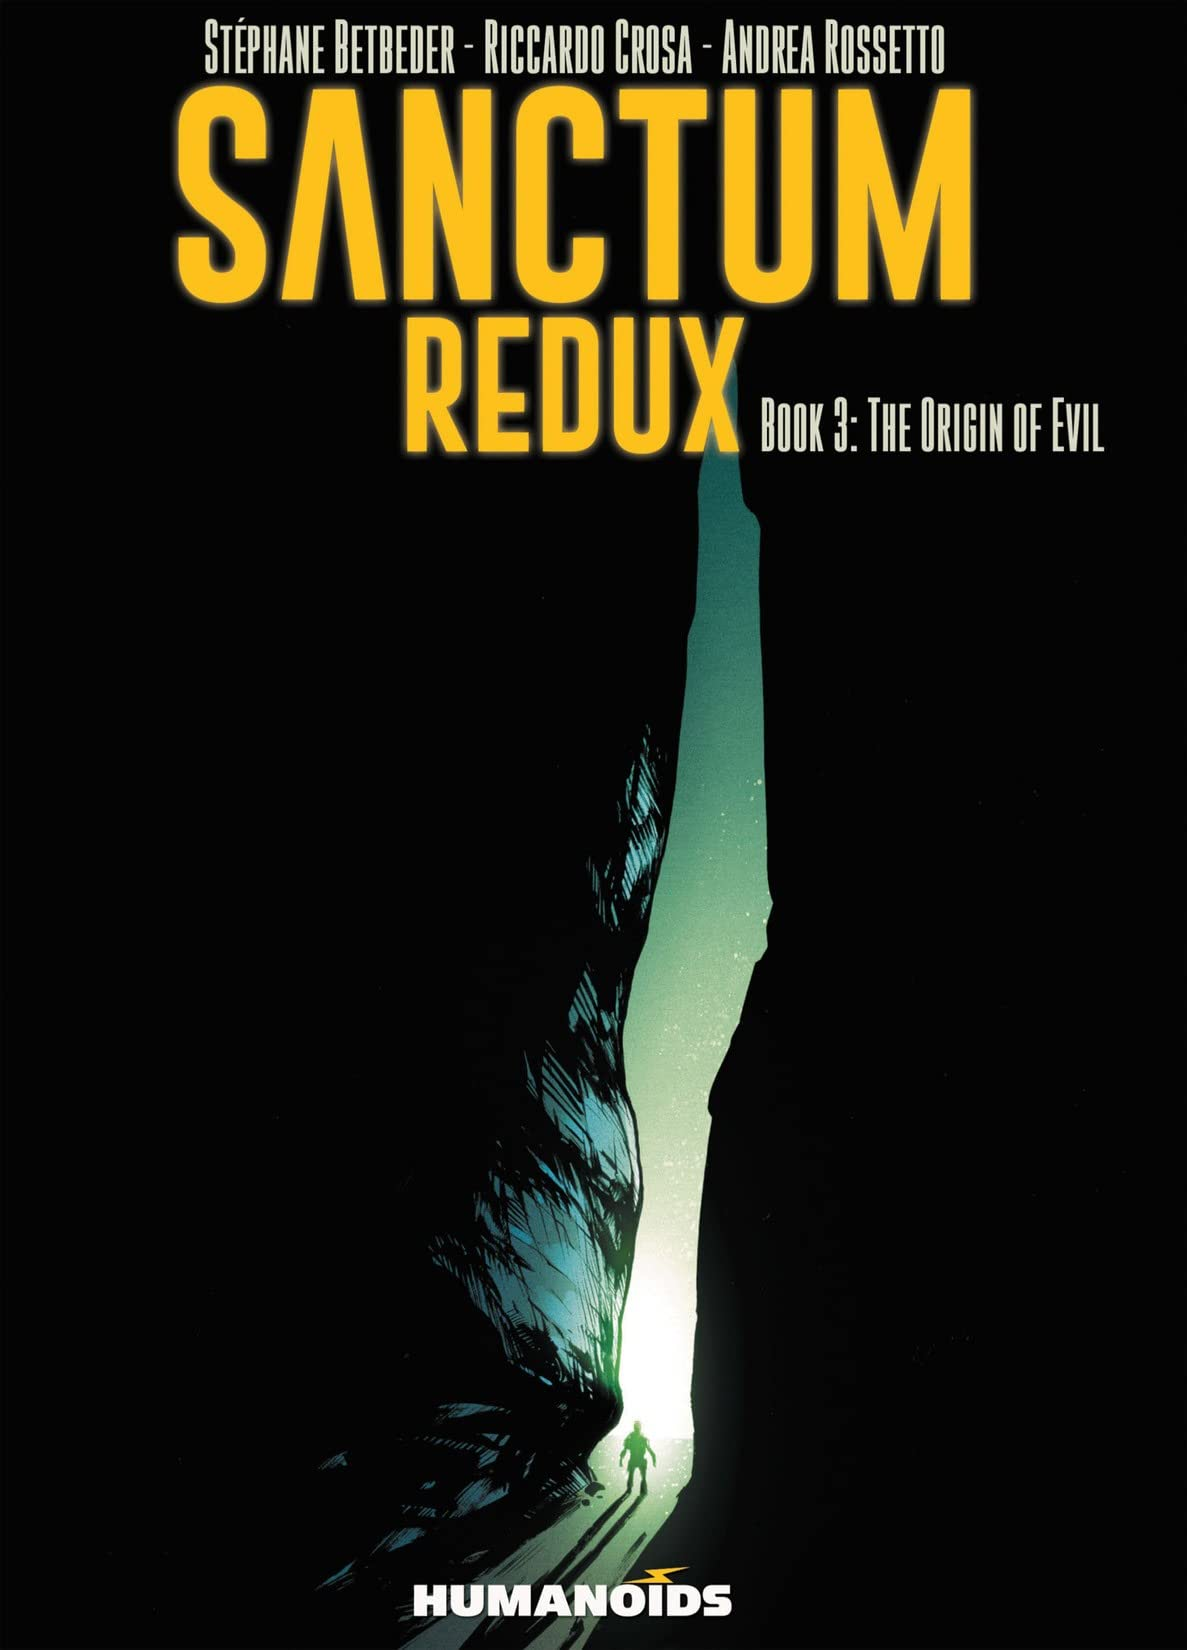 Sanctum Redux Vol. 3: The Origins of Evil